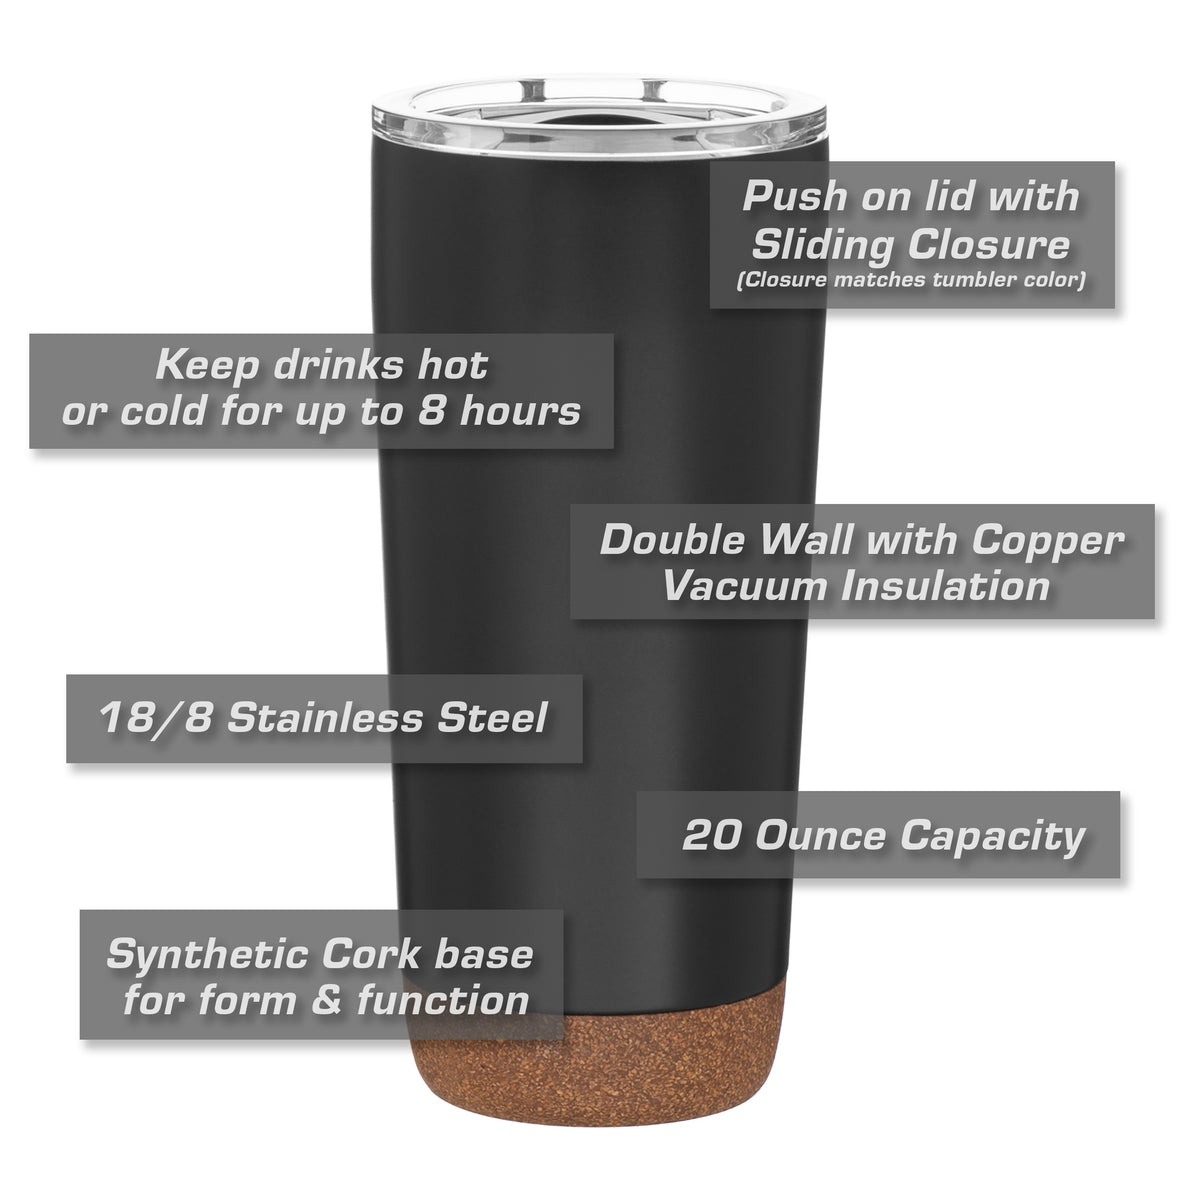 Porsche 964 Turbo Insulated Stainless Steel Coffee Tumbler - 20 oz